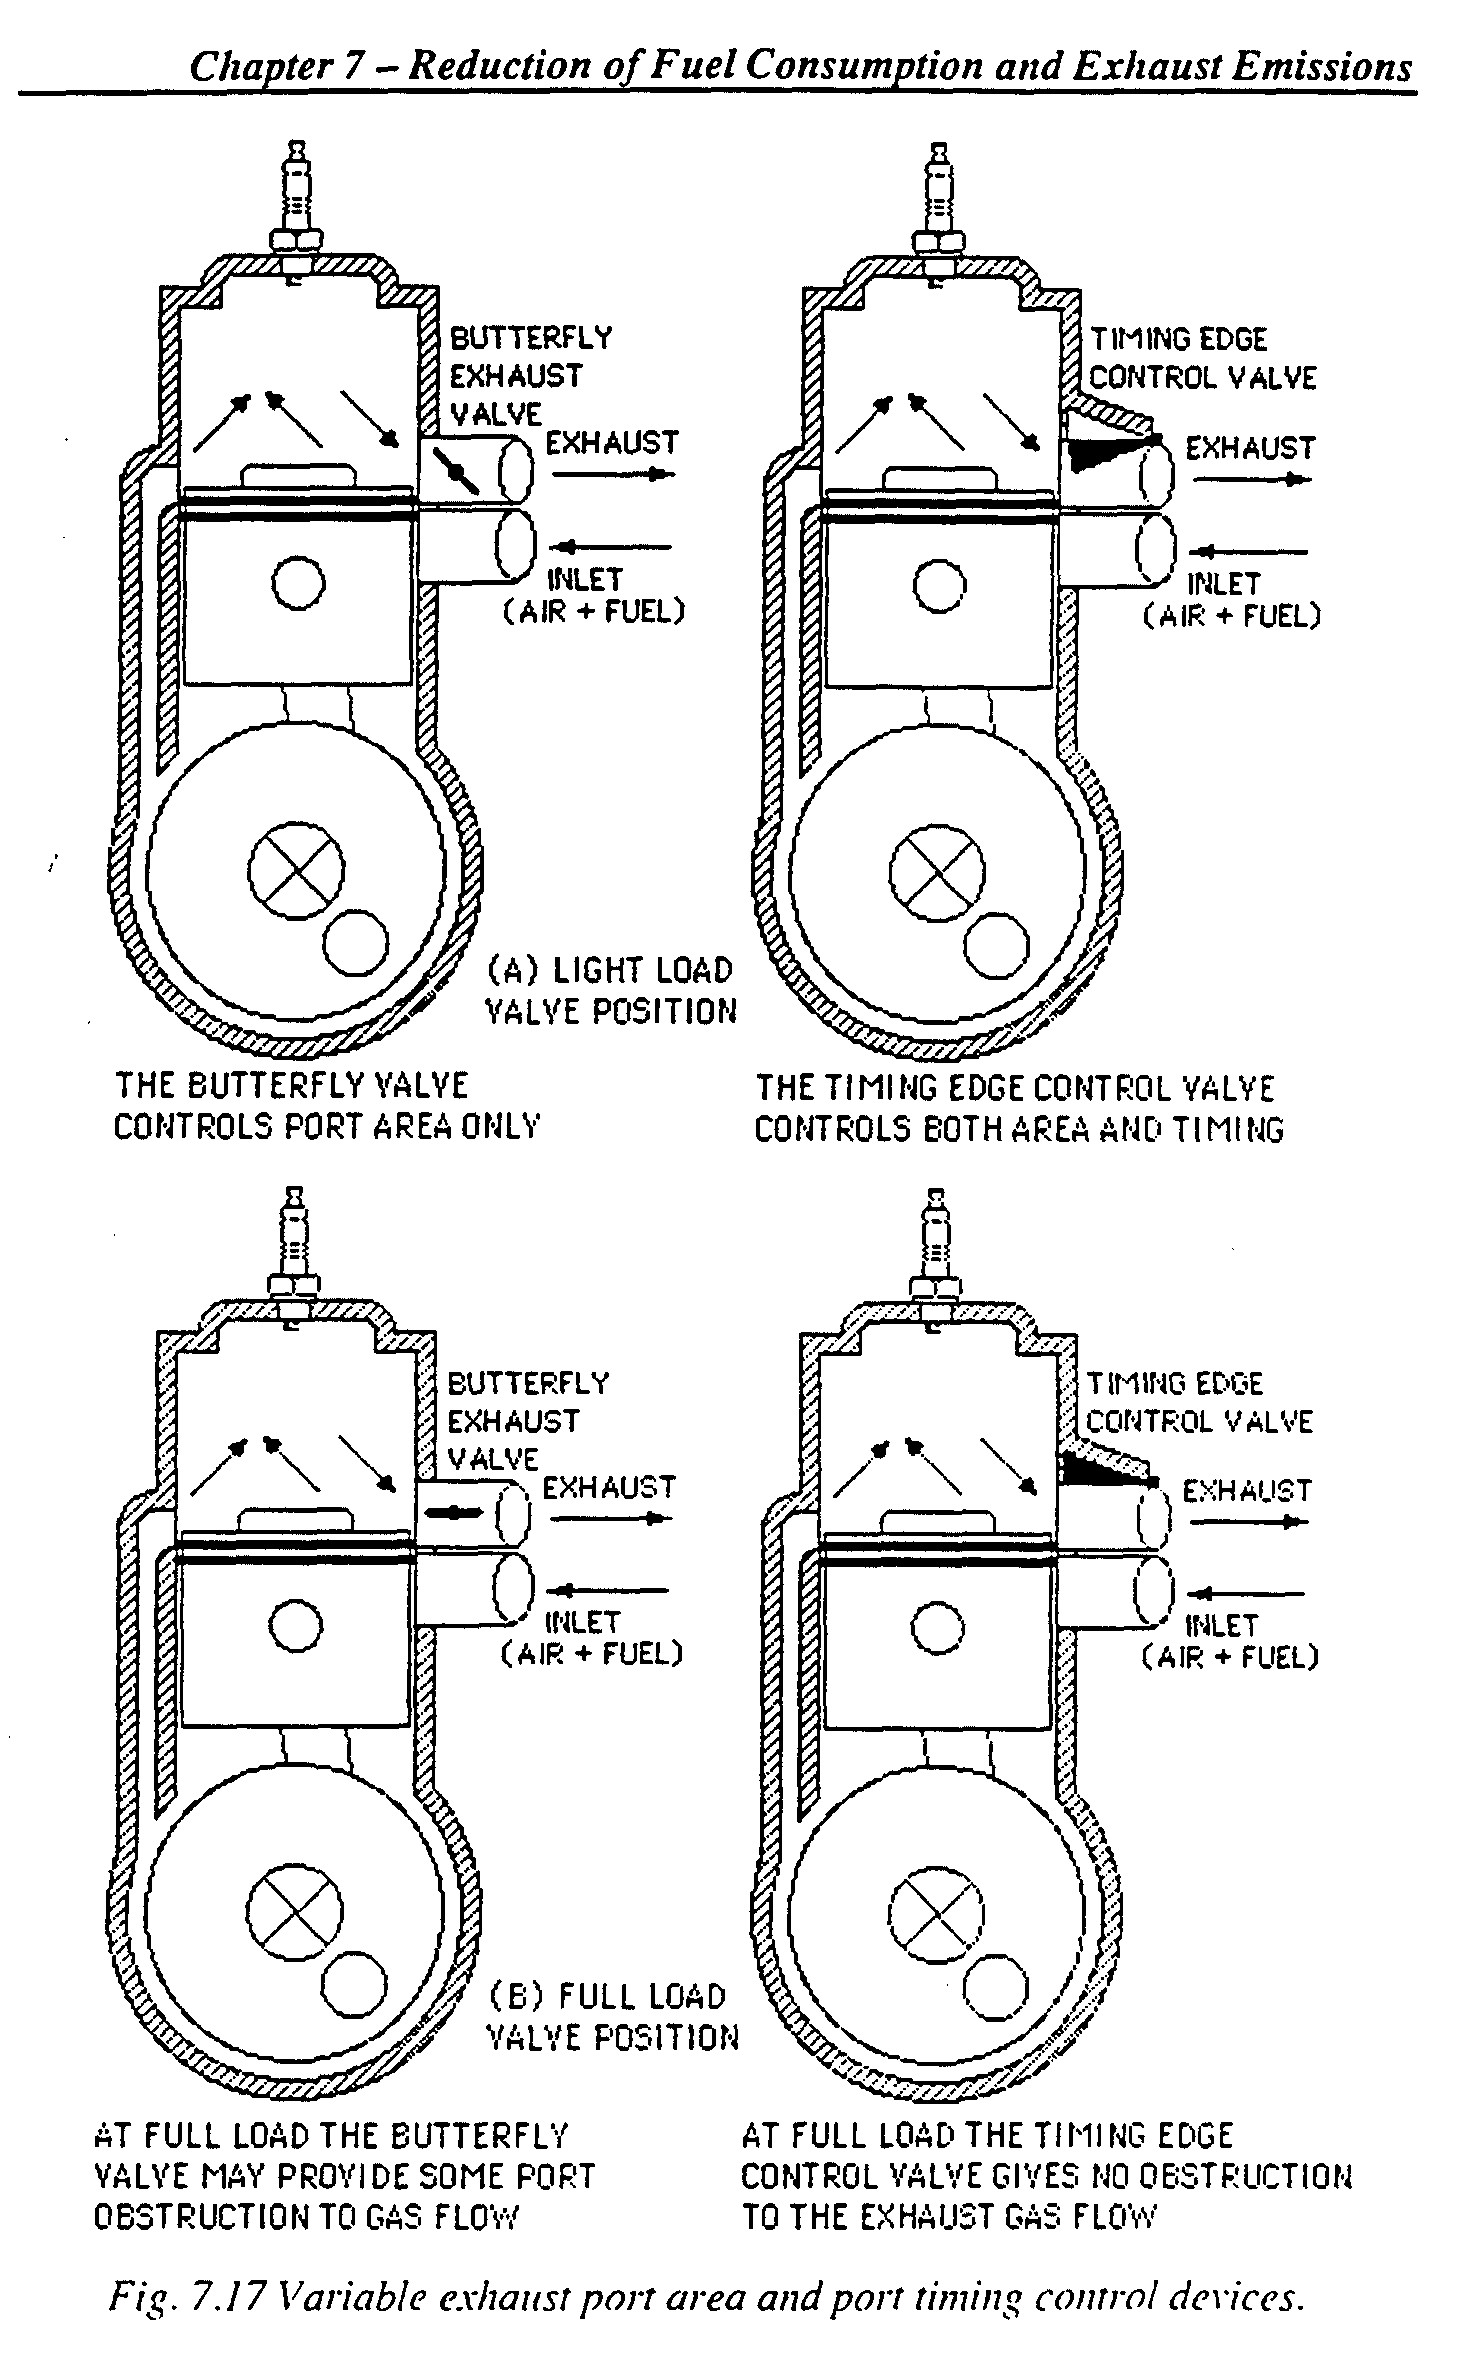 Valve Timing Diagram for Four Stroke Petrol Engine Wo A1 Two Cycle Engine with Reduced Hydrocarbon Emissions Of Valve Timing Diagram for Four Stroke Petrol Engine